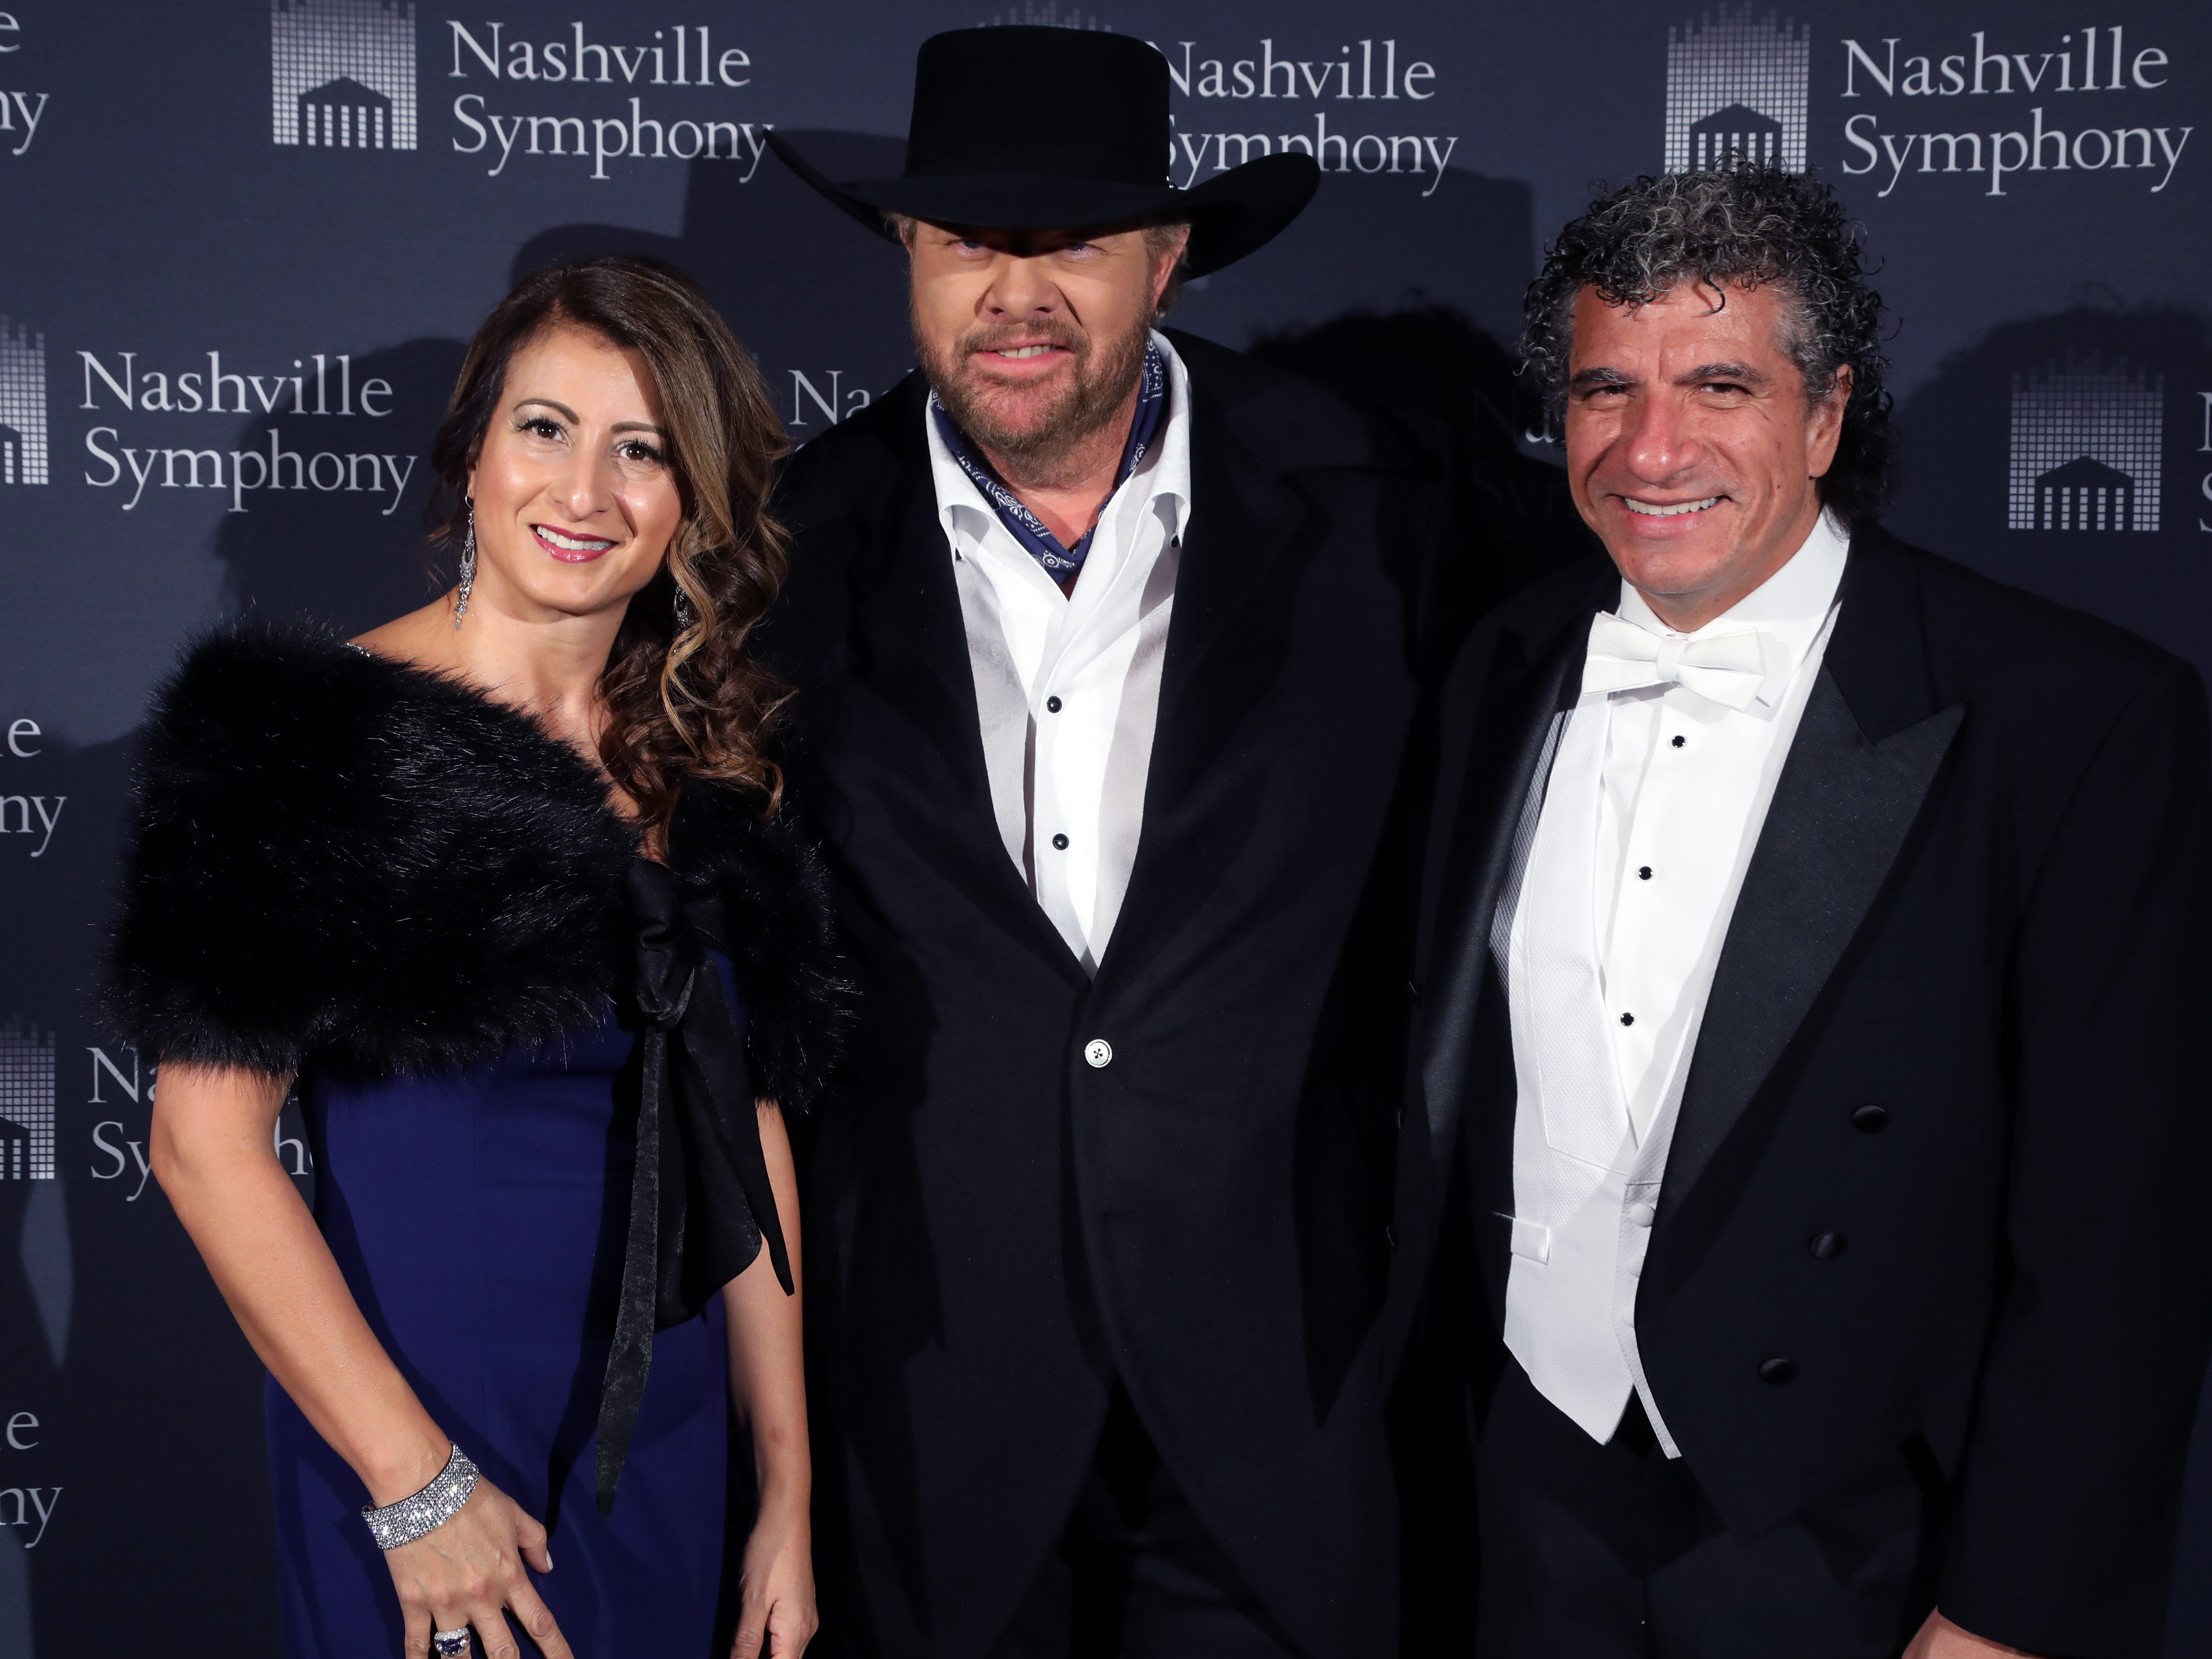 Shirley Guerrero, Toby Keith, Giancarlo Guerrero at the 34th annual Symphony Ball on Saturday, December 8, 2018, at Schermerhorn Symphony Center.